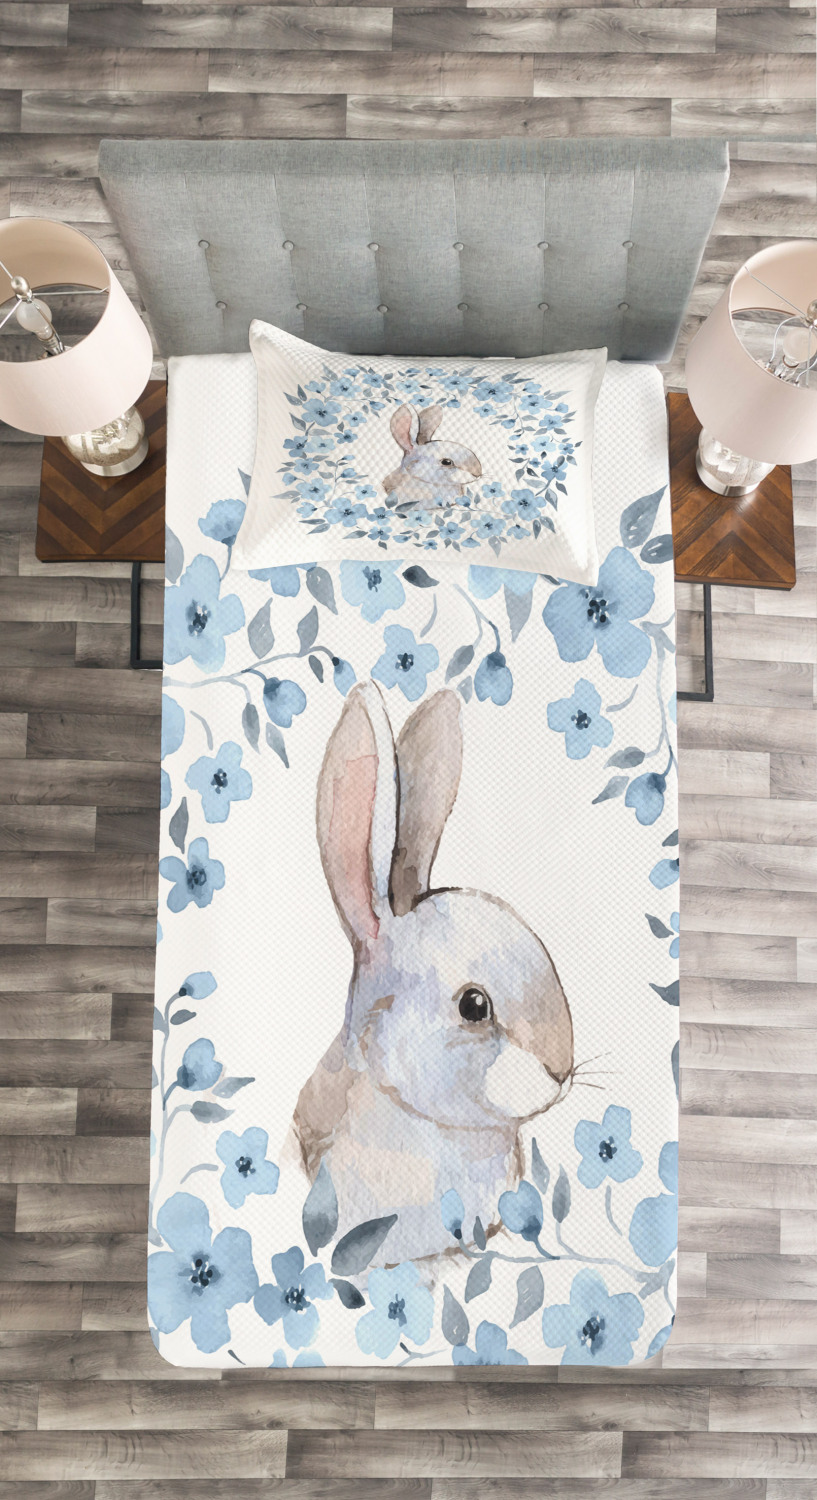 Rabbit Portrait Print Country Quilted Bedspread /& Pillow Shams Set